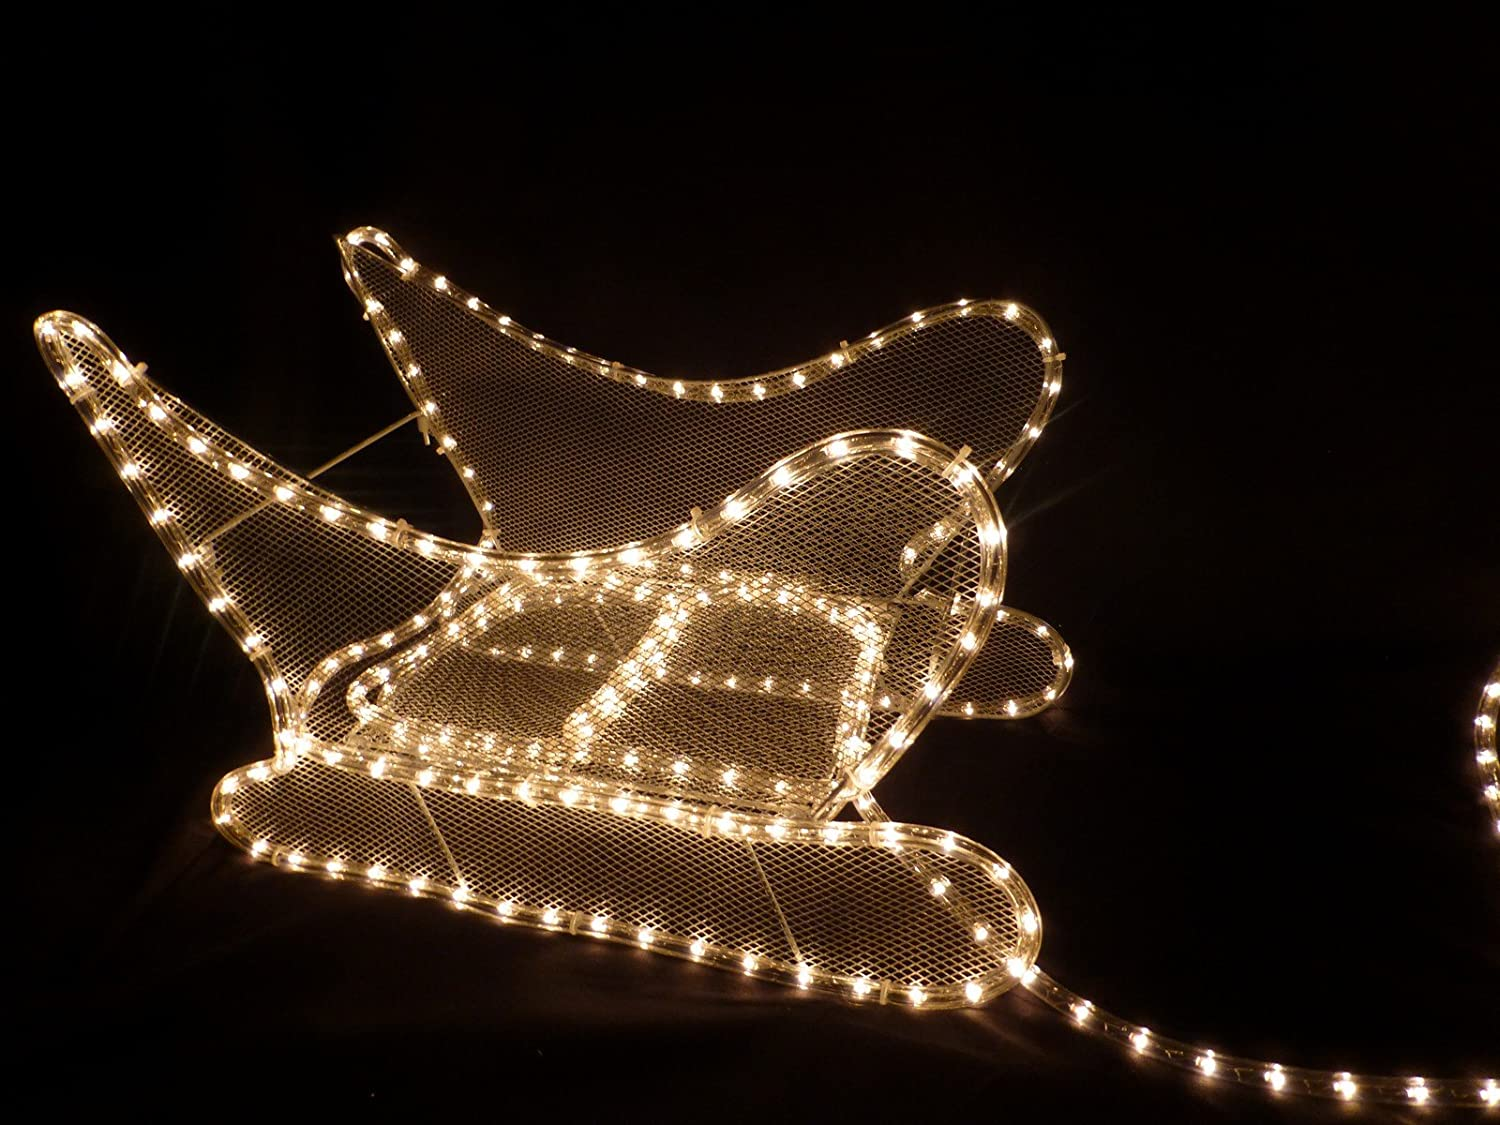 Light Up Reindeer and Sleigh Ropelight Christmas Decoration With LED Lights for Outdoor or Indoor Use Christmas Decorations